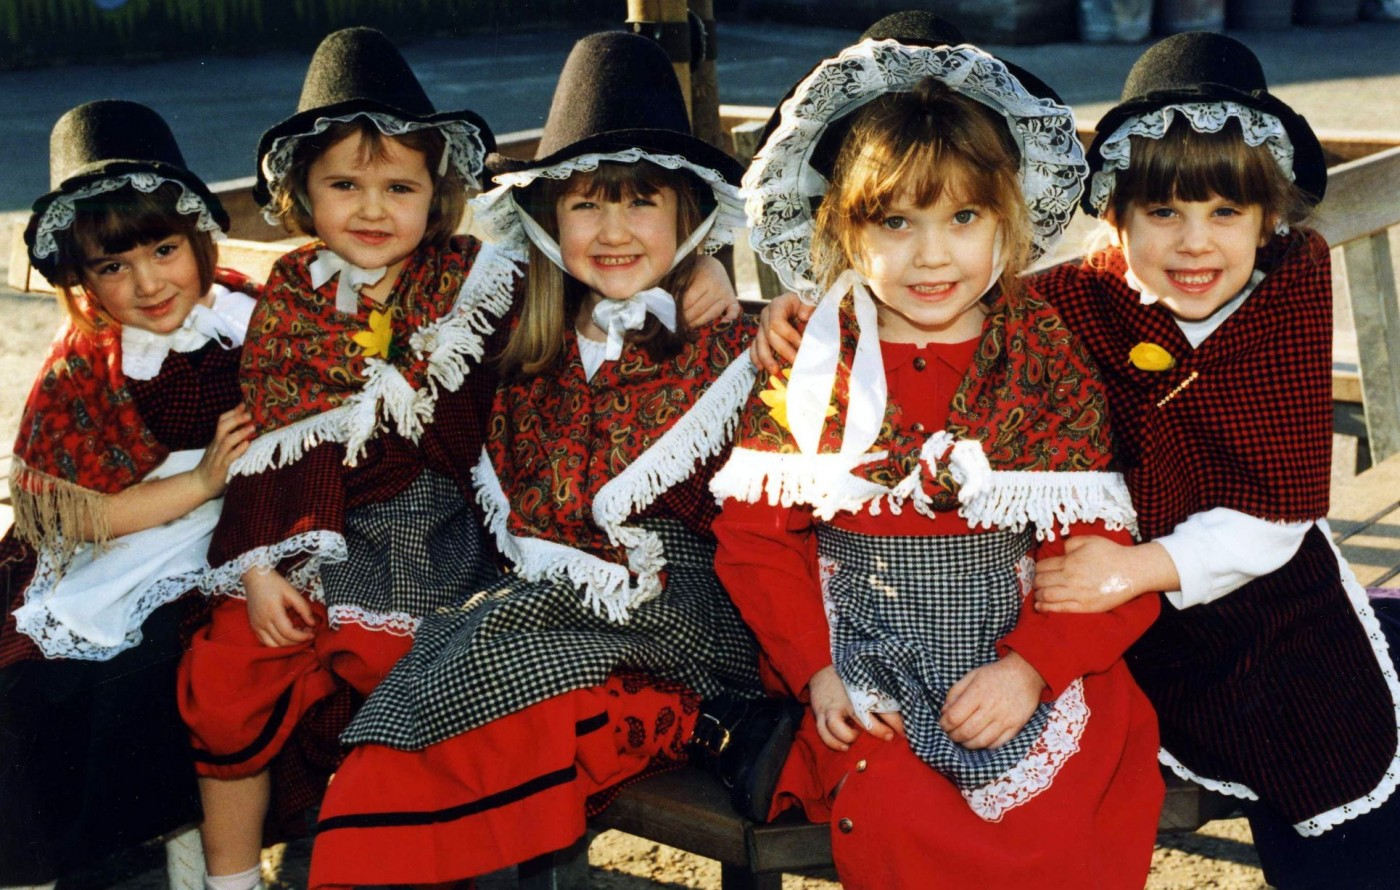 1.Five young girls in traditional Welsh dress at Ysgol Gymraeg Treganna, Cardiff in 1998.<br /> Image from: Wales online, 25 Feb 2014, 26 fantastic pictures that show St David's Day celebrations in Wales through the years. Available at: https://www.walesonline.co.uk/incoming/gallery/26-fantastic-pictures-show-st-6745527<br />